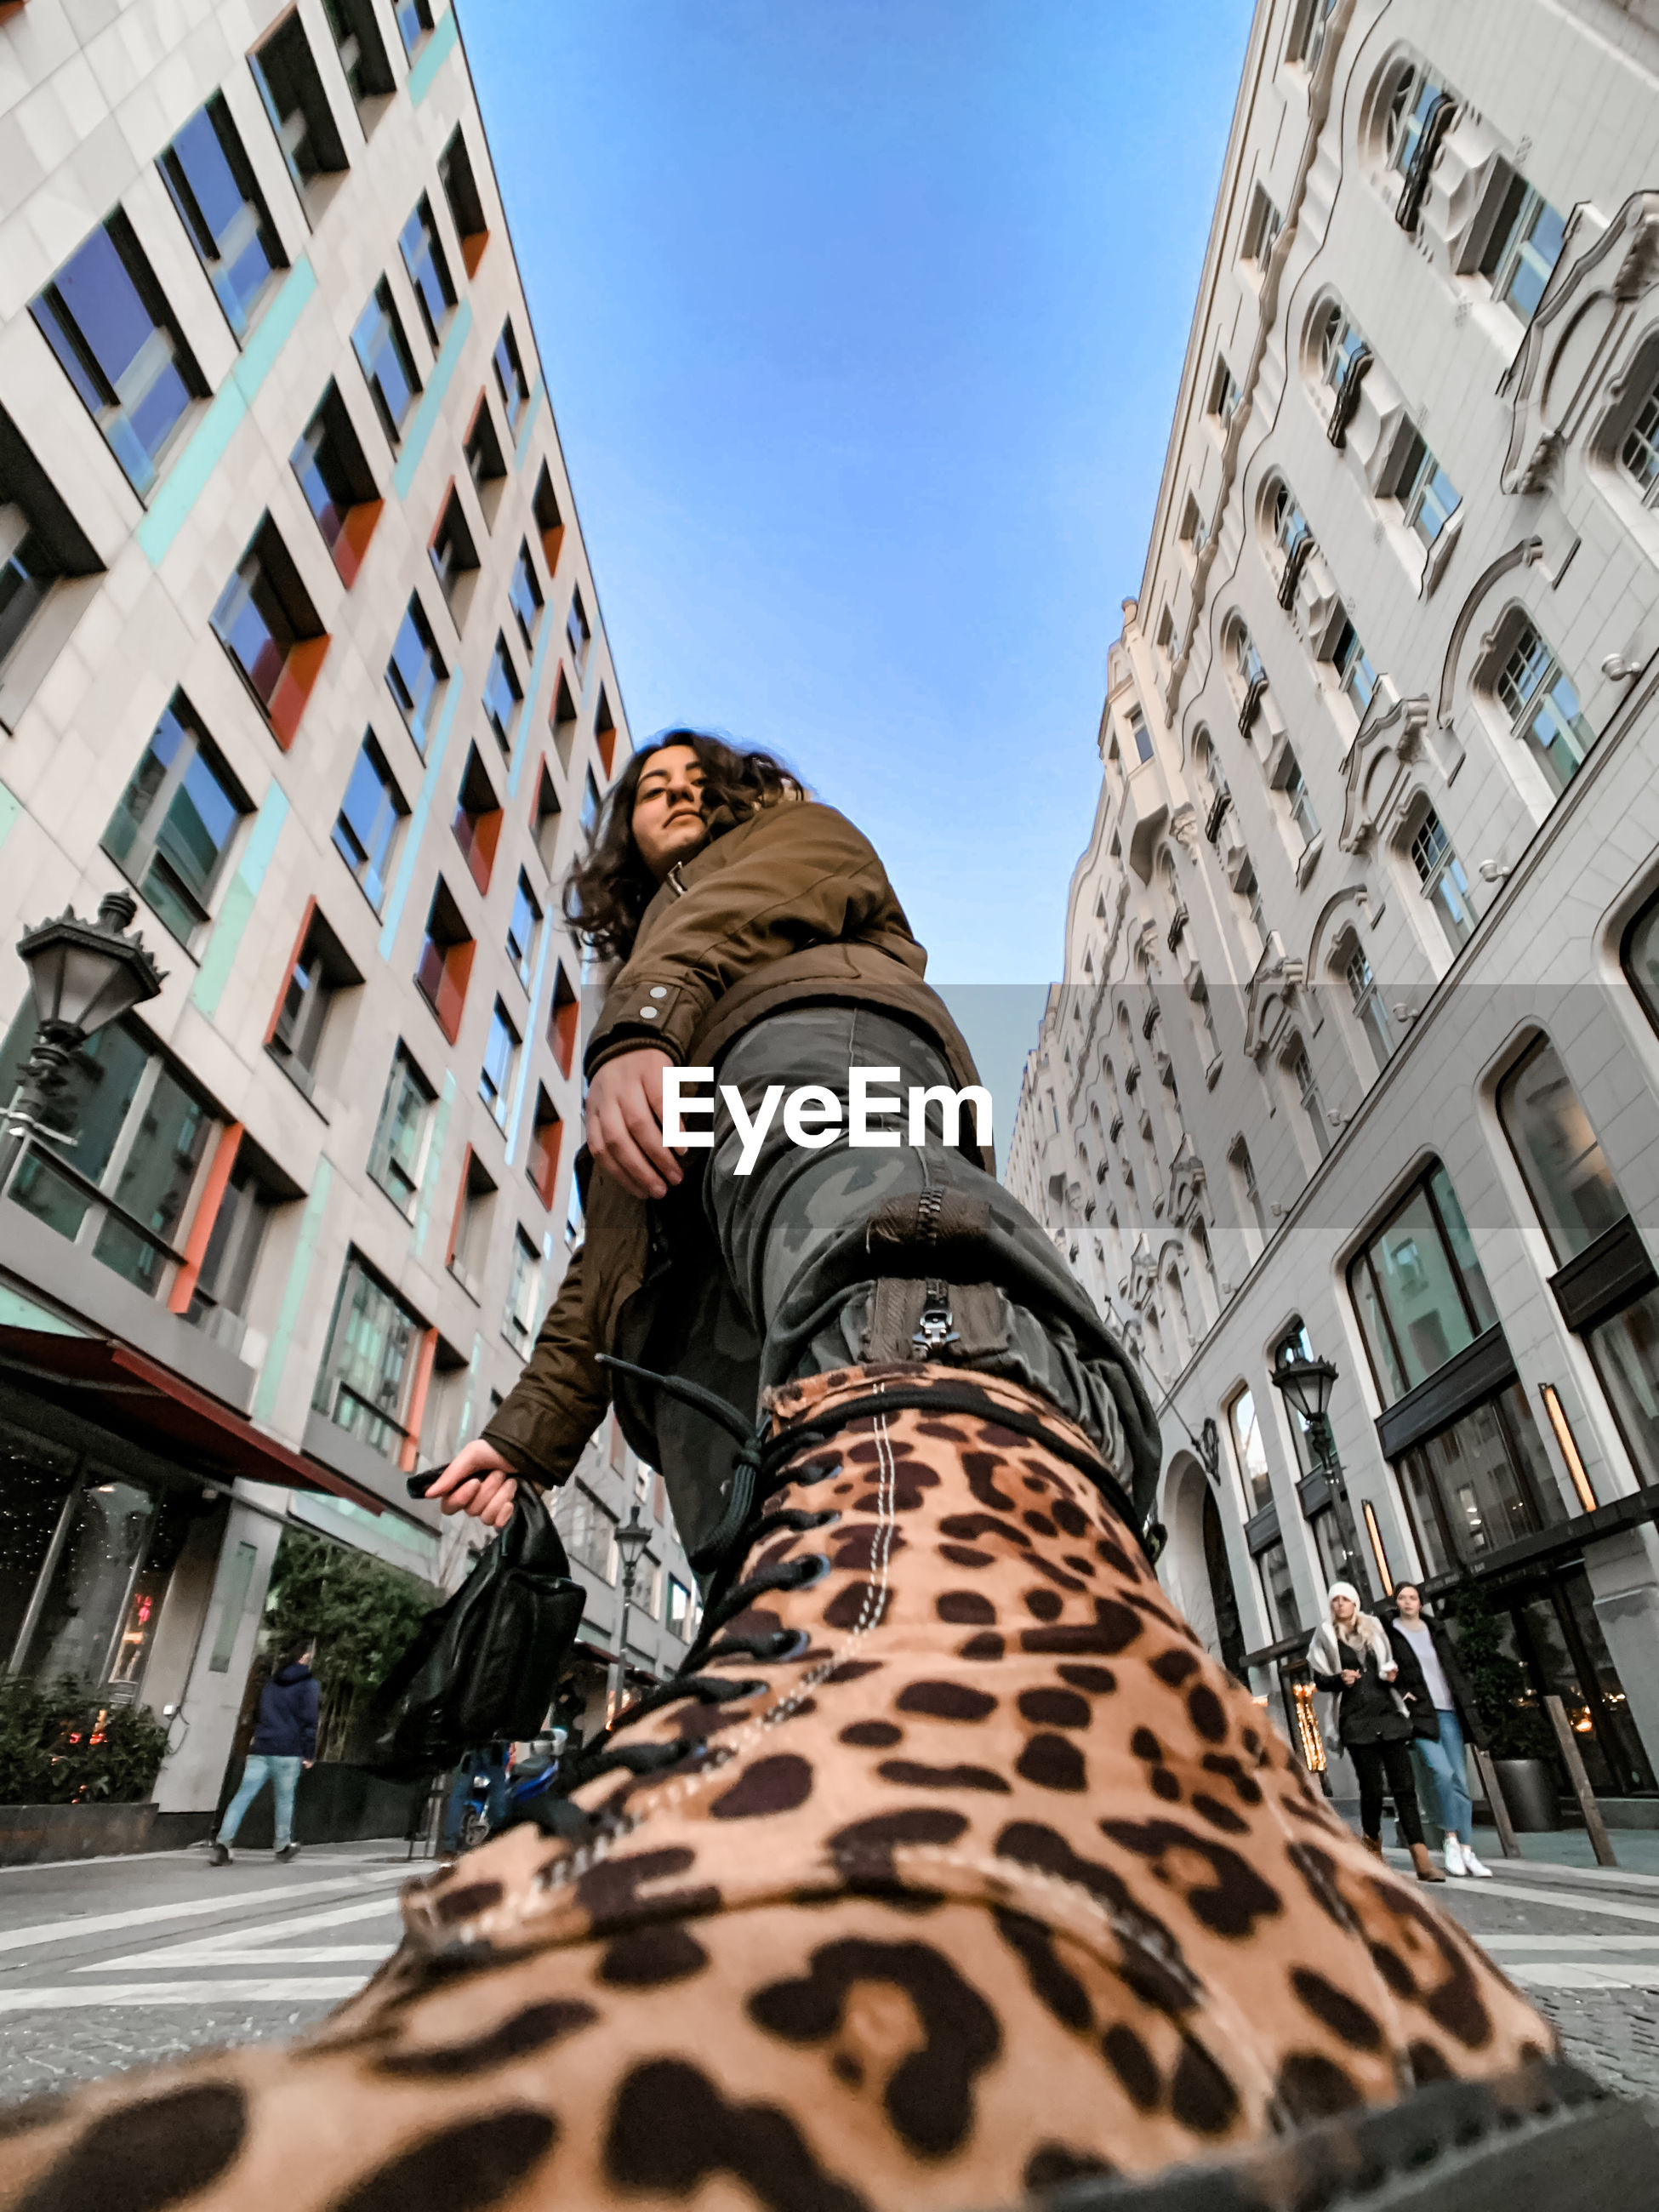 LOW ANGLE VIEW OF MAN AGAINST SKY IN CITY